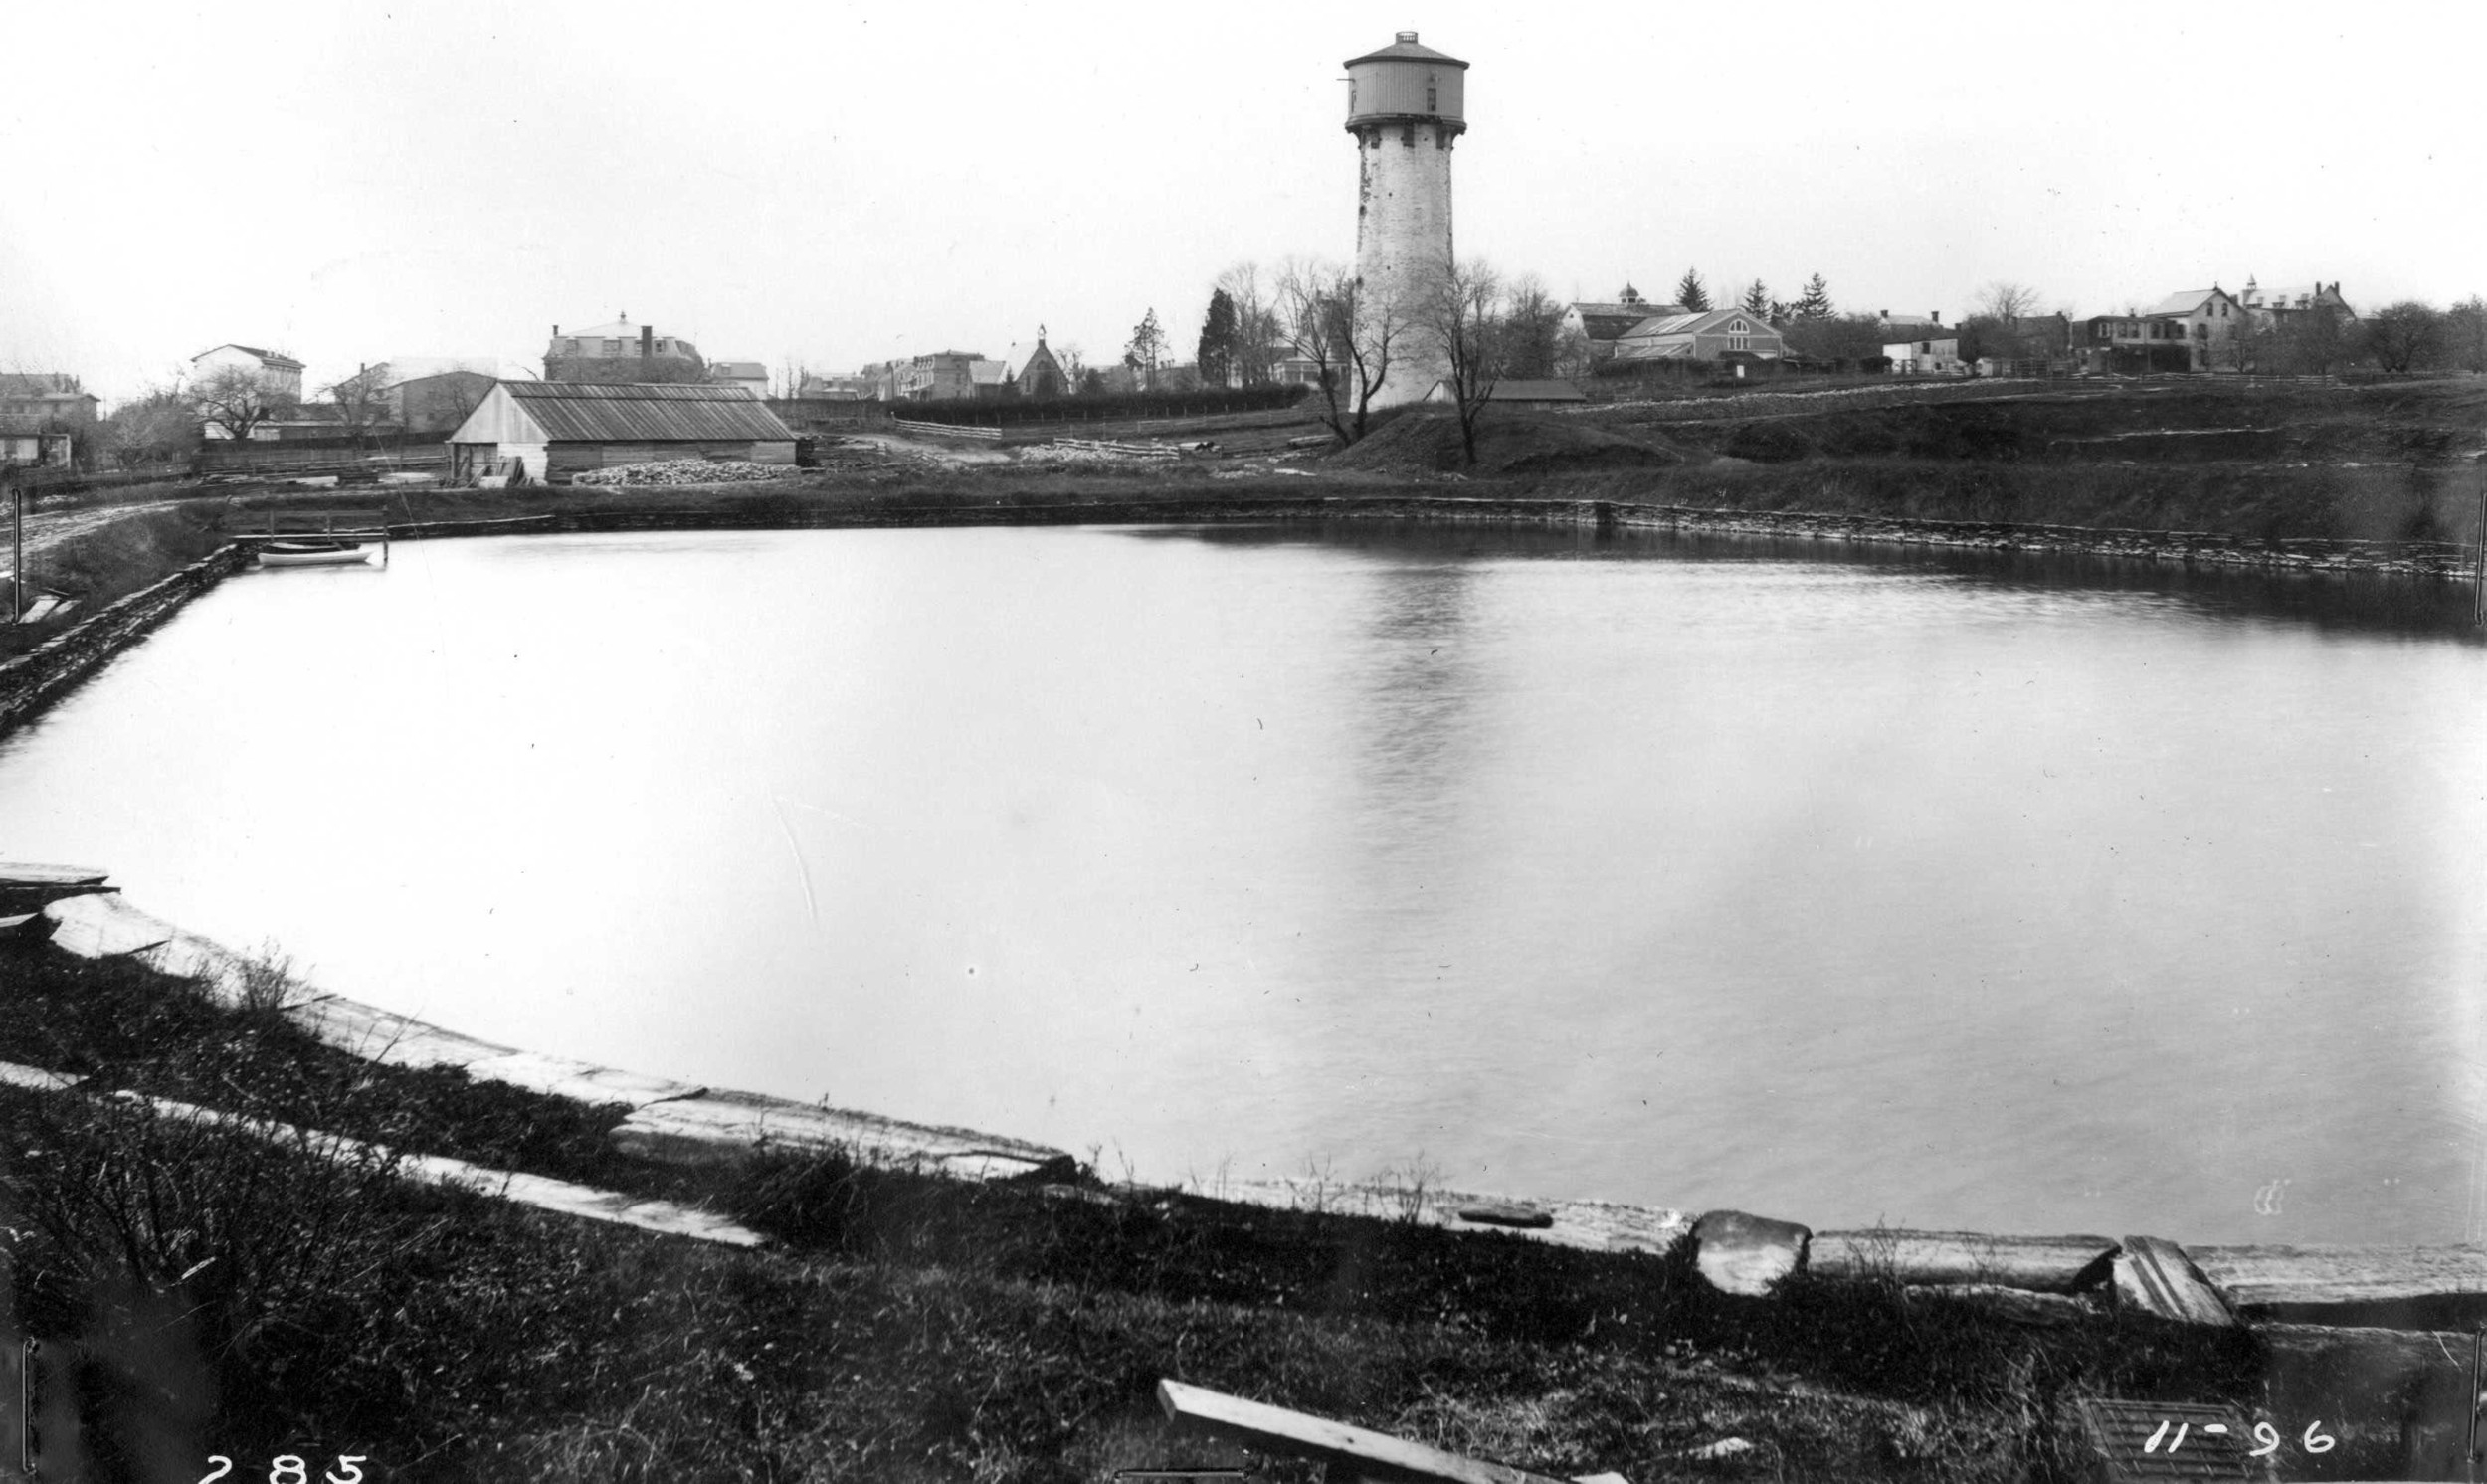 Chestnut Hill Water Tower & 5,000,000 Gallon Reservoir:Photo Courtesy of Philadelphia Water Department Historical Collection.